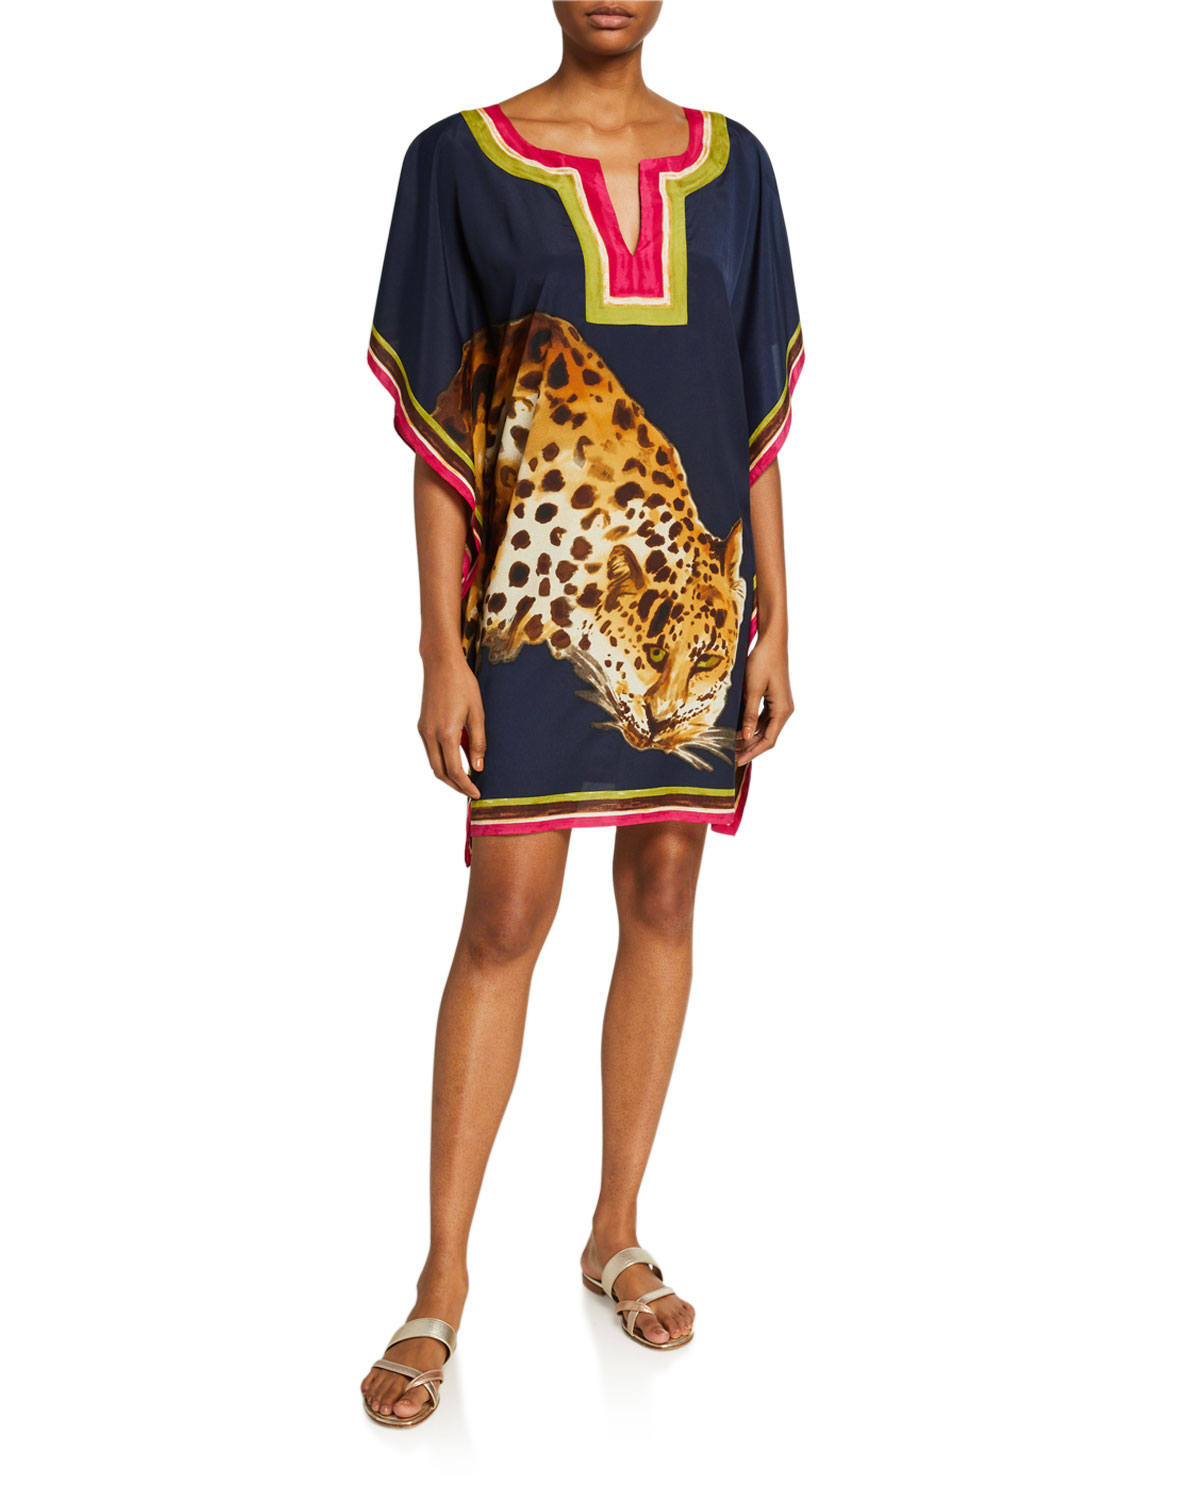 Trina Turk Theodora Cheetah Graphic Shift Dress